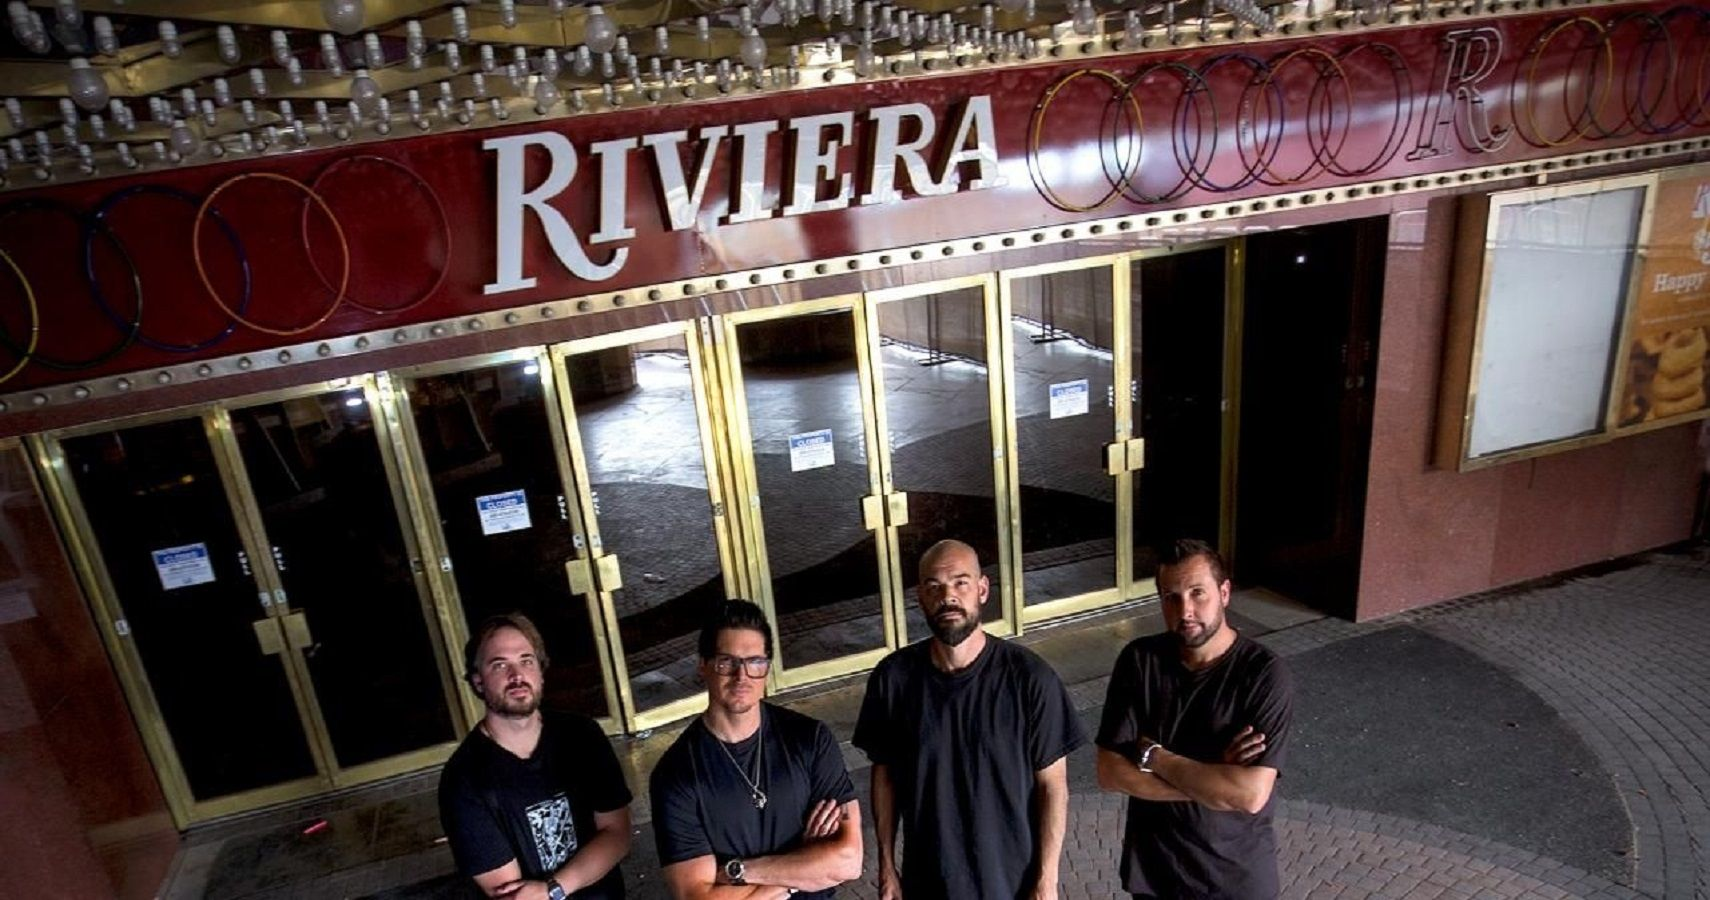 The 5 Best & 5 Worst Episodes Of Ghost Adventures, According To IMDb